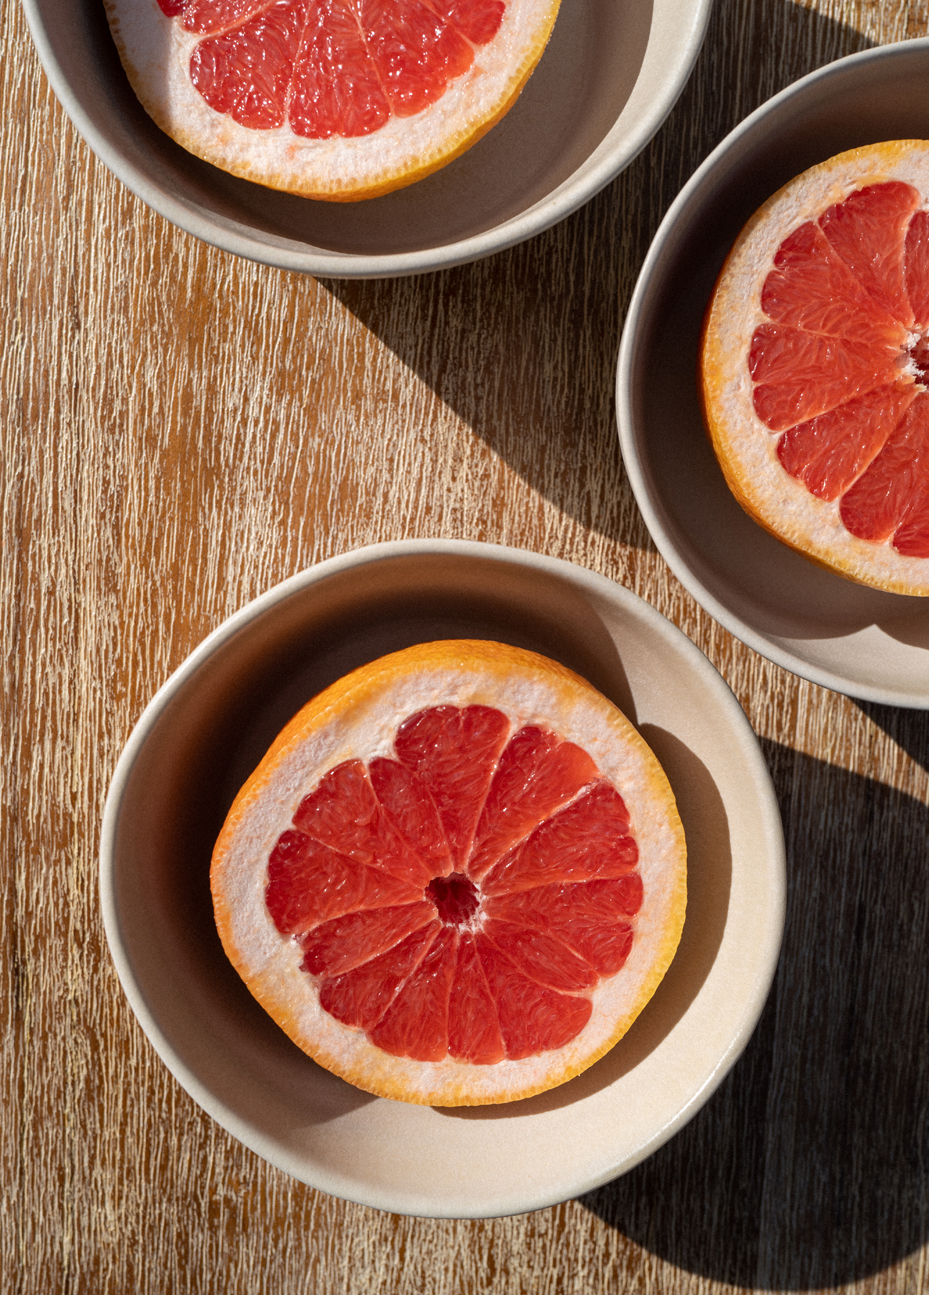 Photograph of sliced grapefruit in bowls, captured by photographer Charlotte Bland.